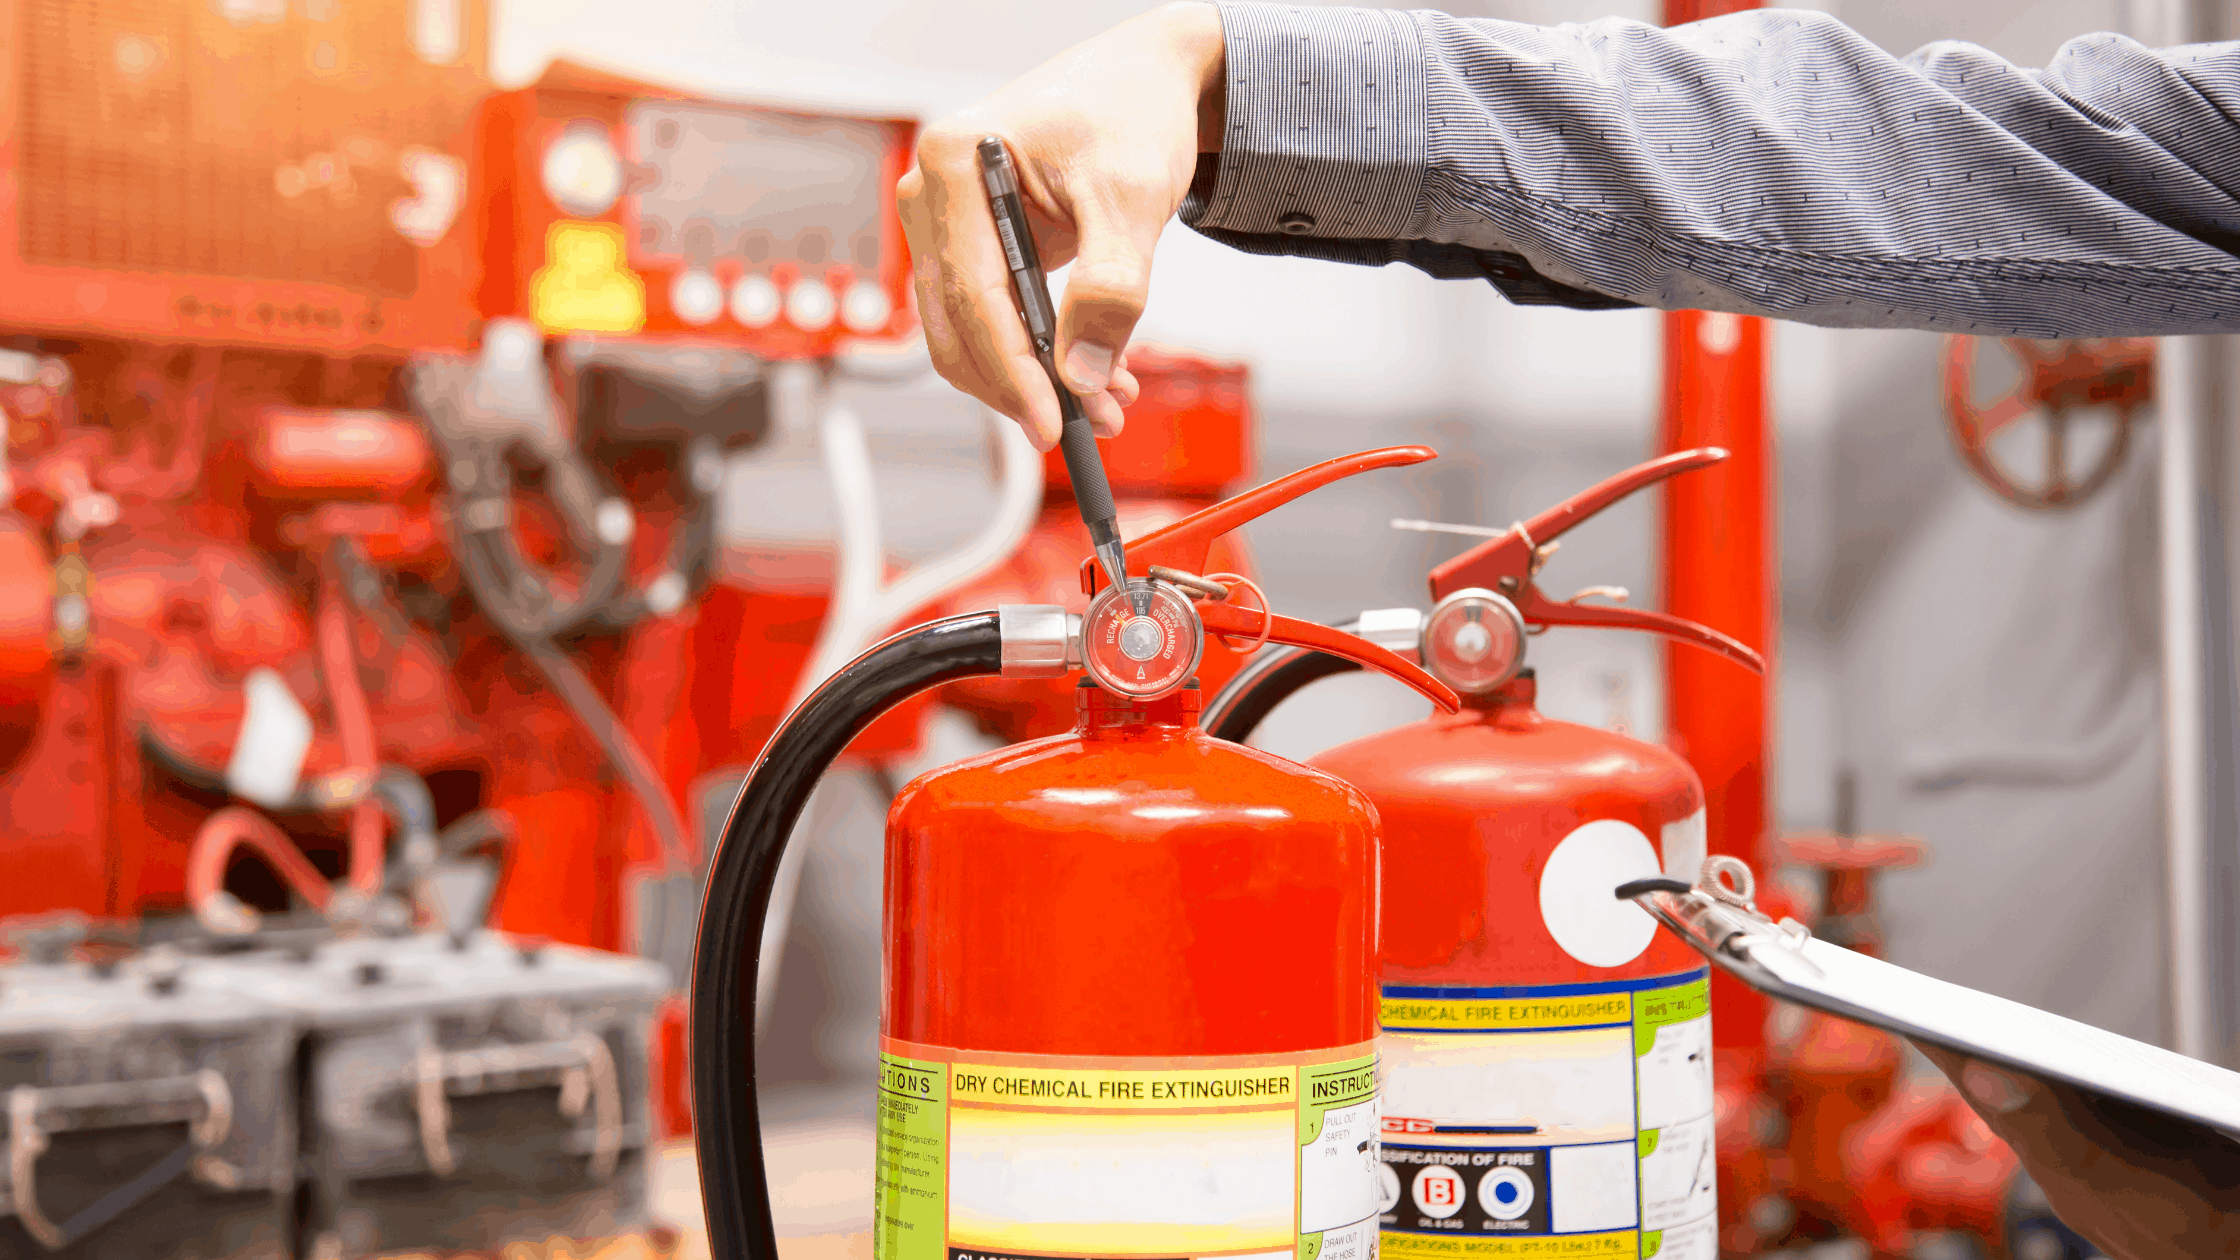 Simple Checklist for Fire Inspection